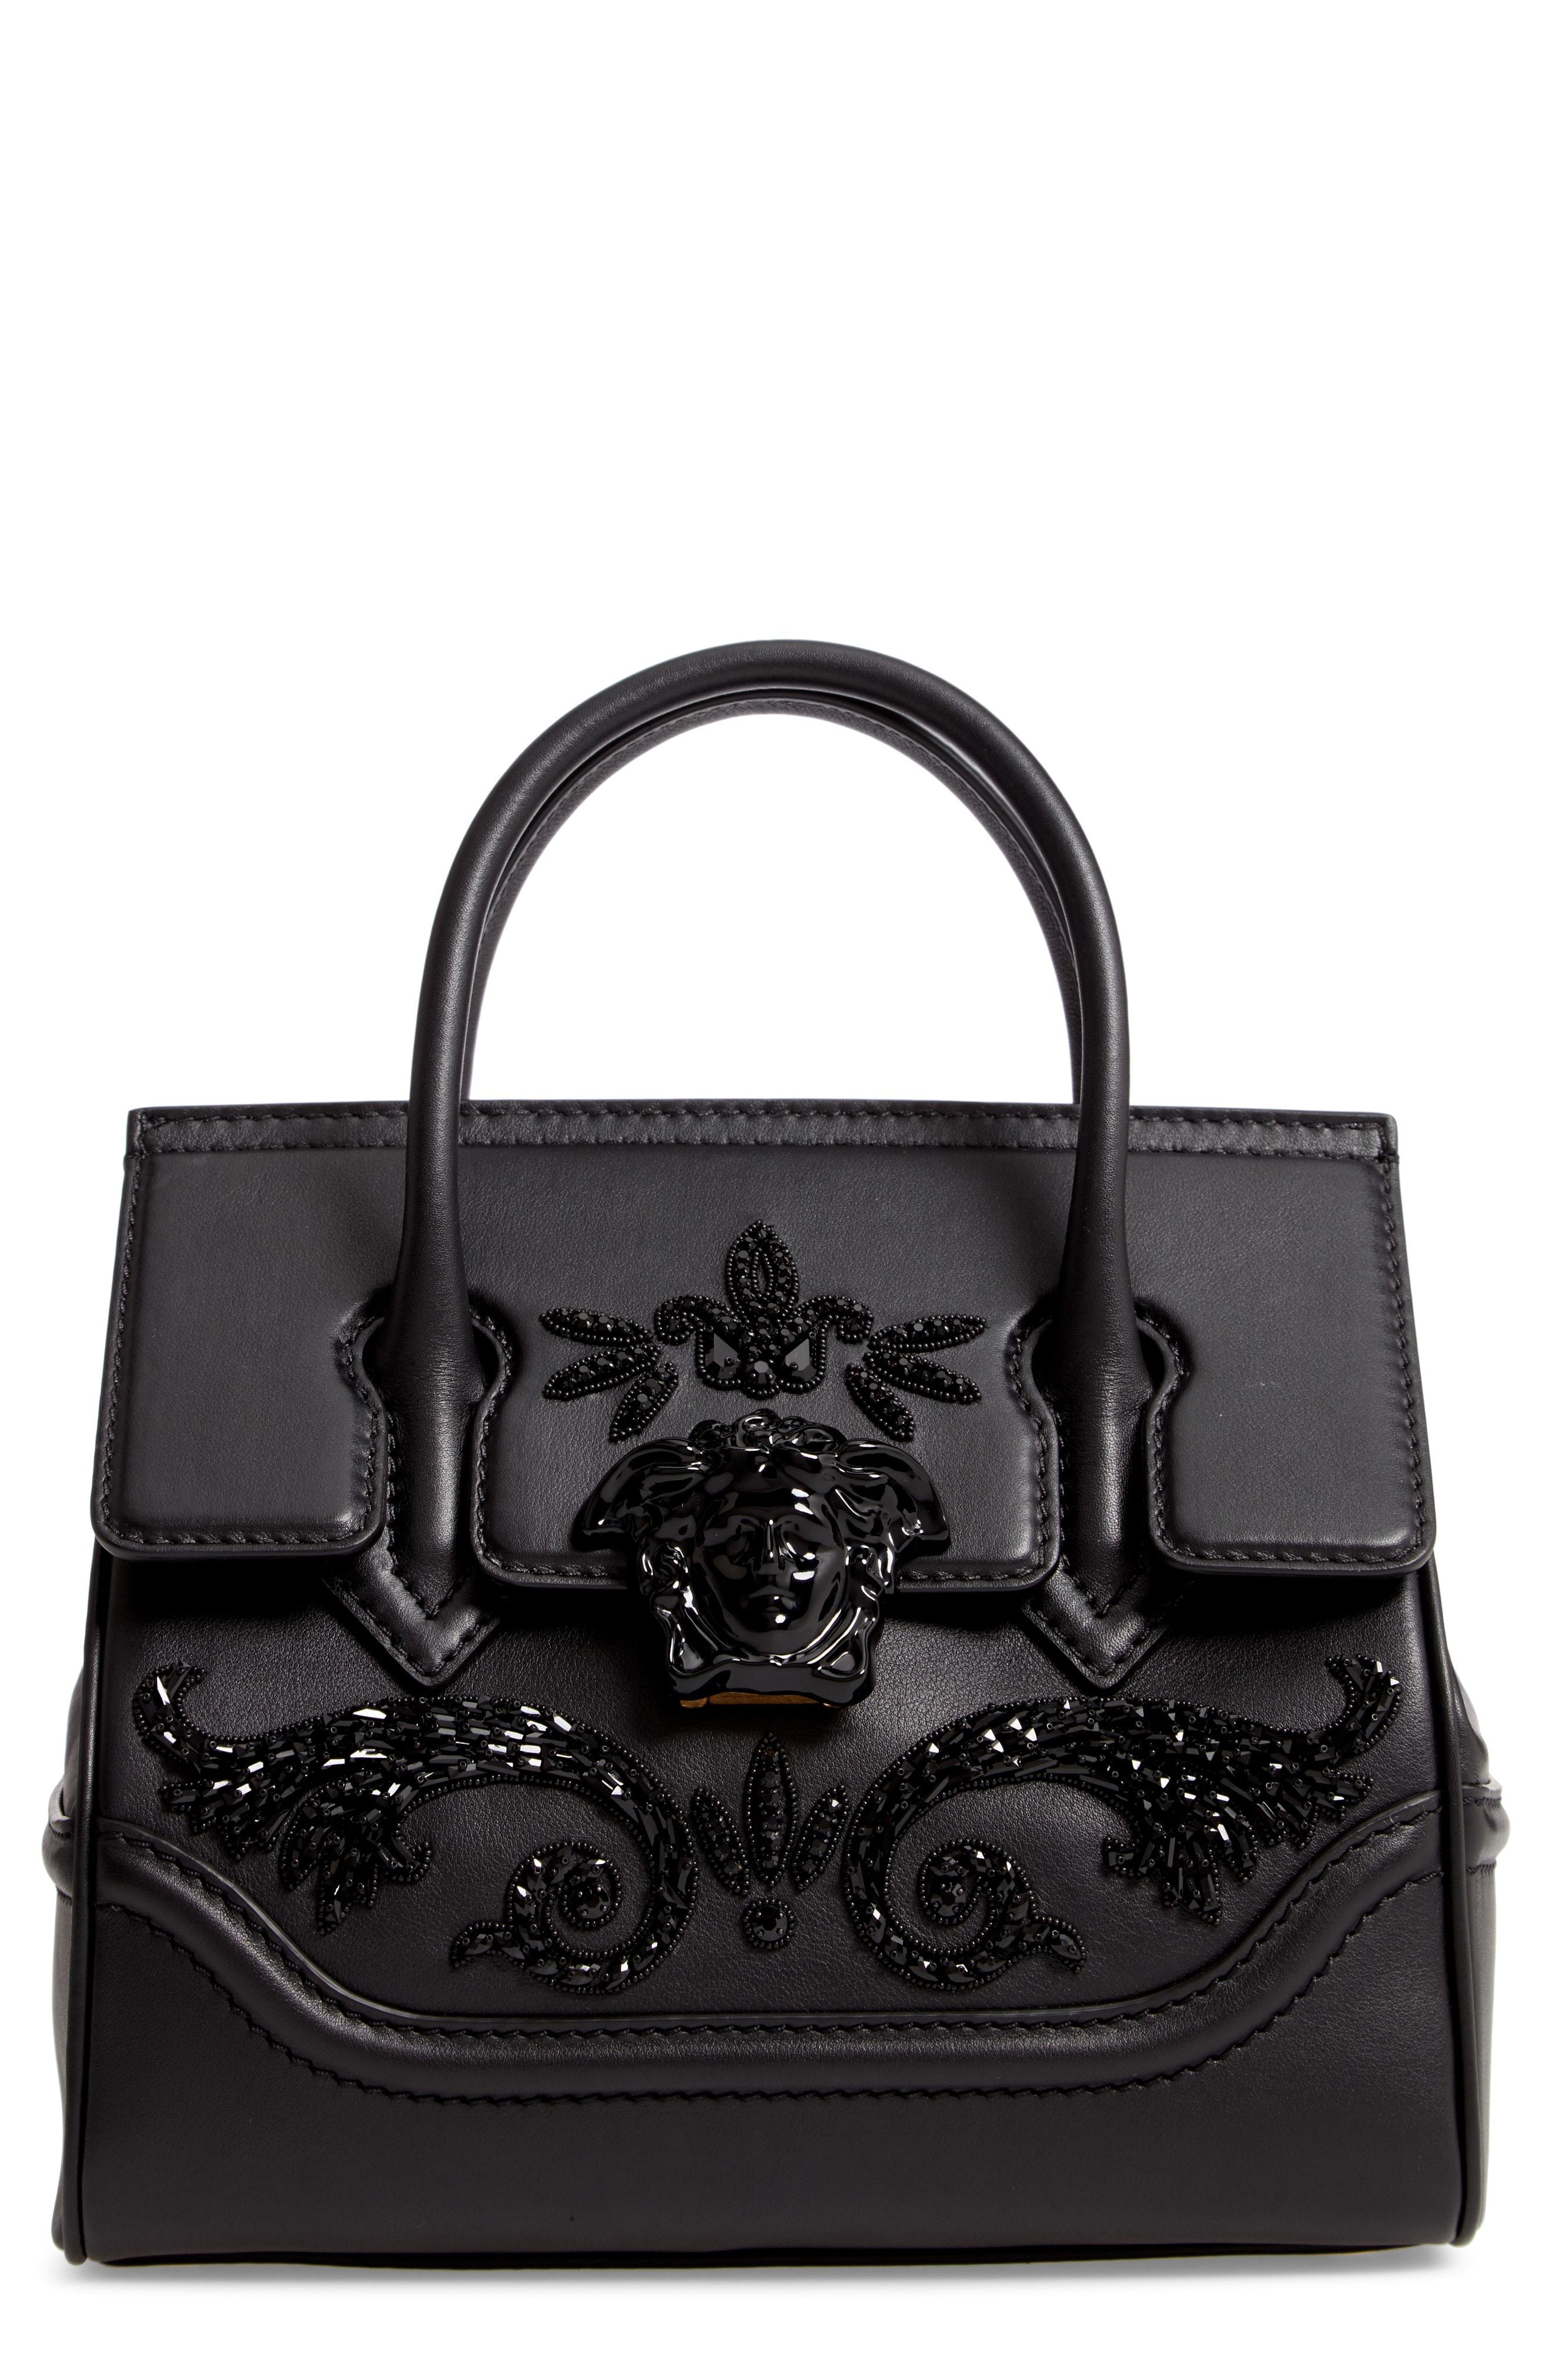 4fc2030f42 Palazzo Empire Medium Crystal Embellished Leather Satchel. Black  Embellished Leather Satchel Bag by Versace